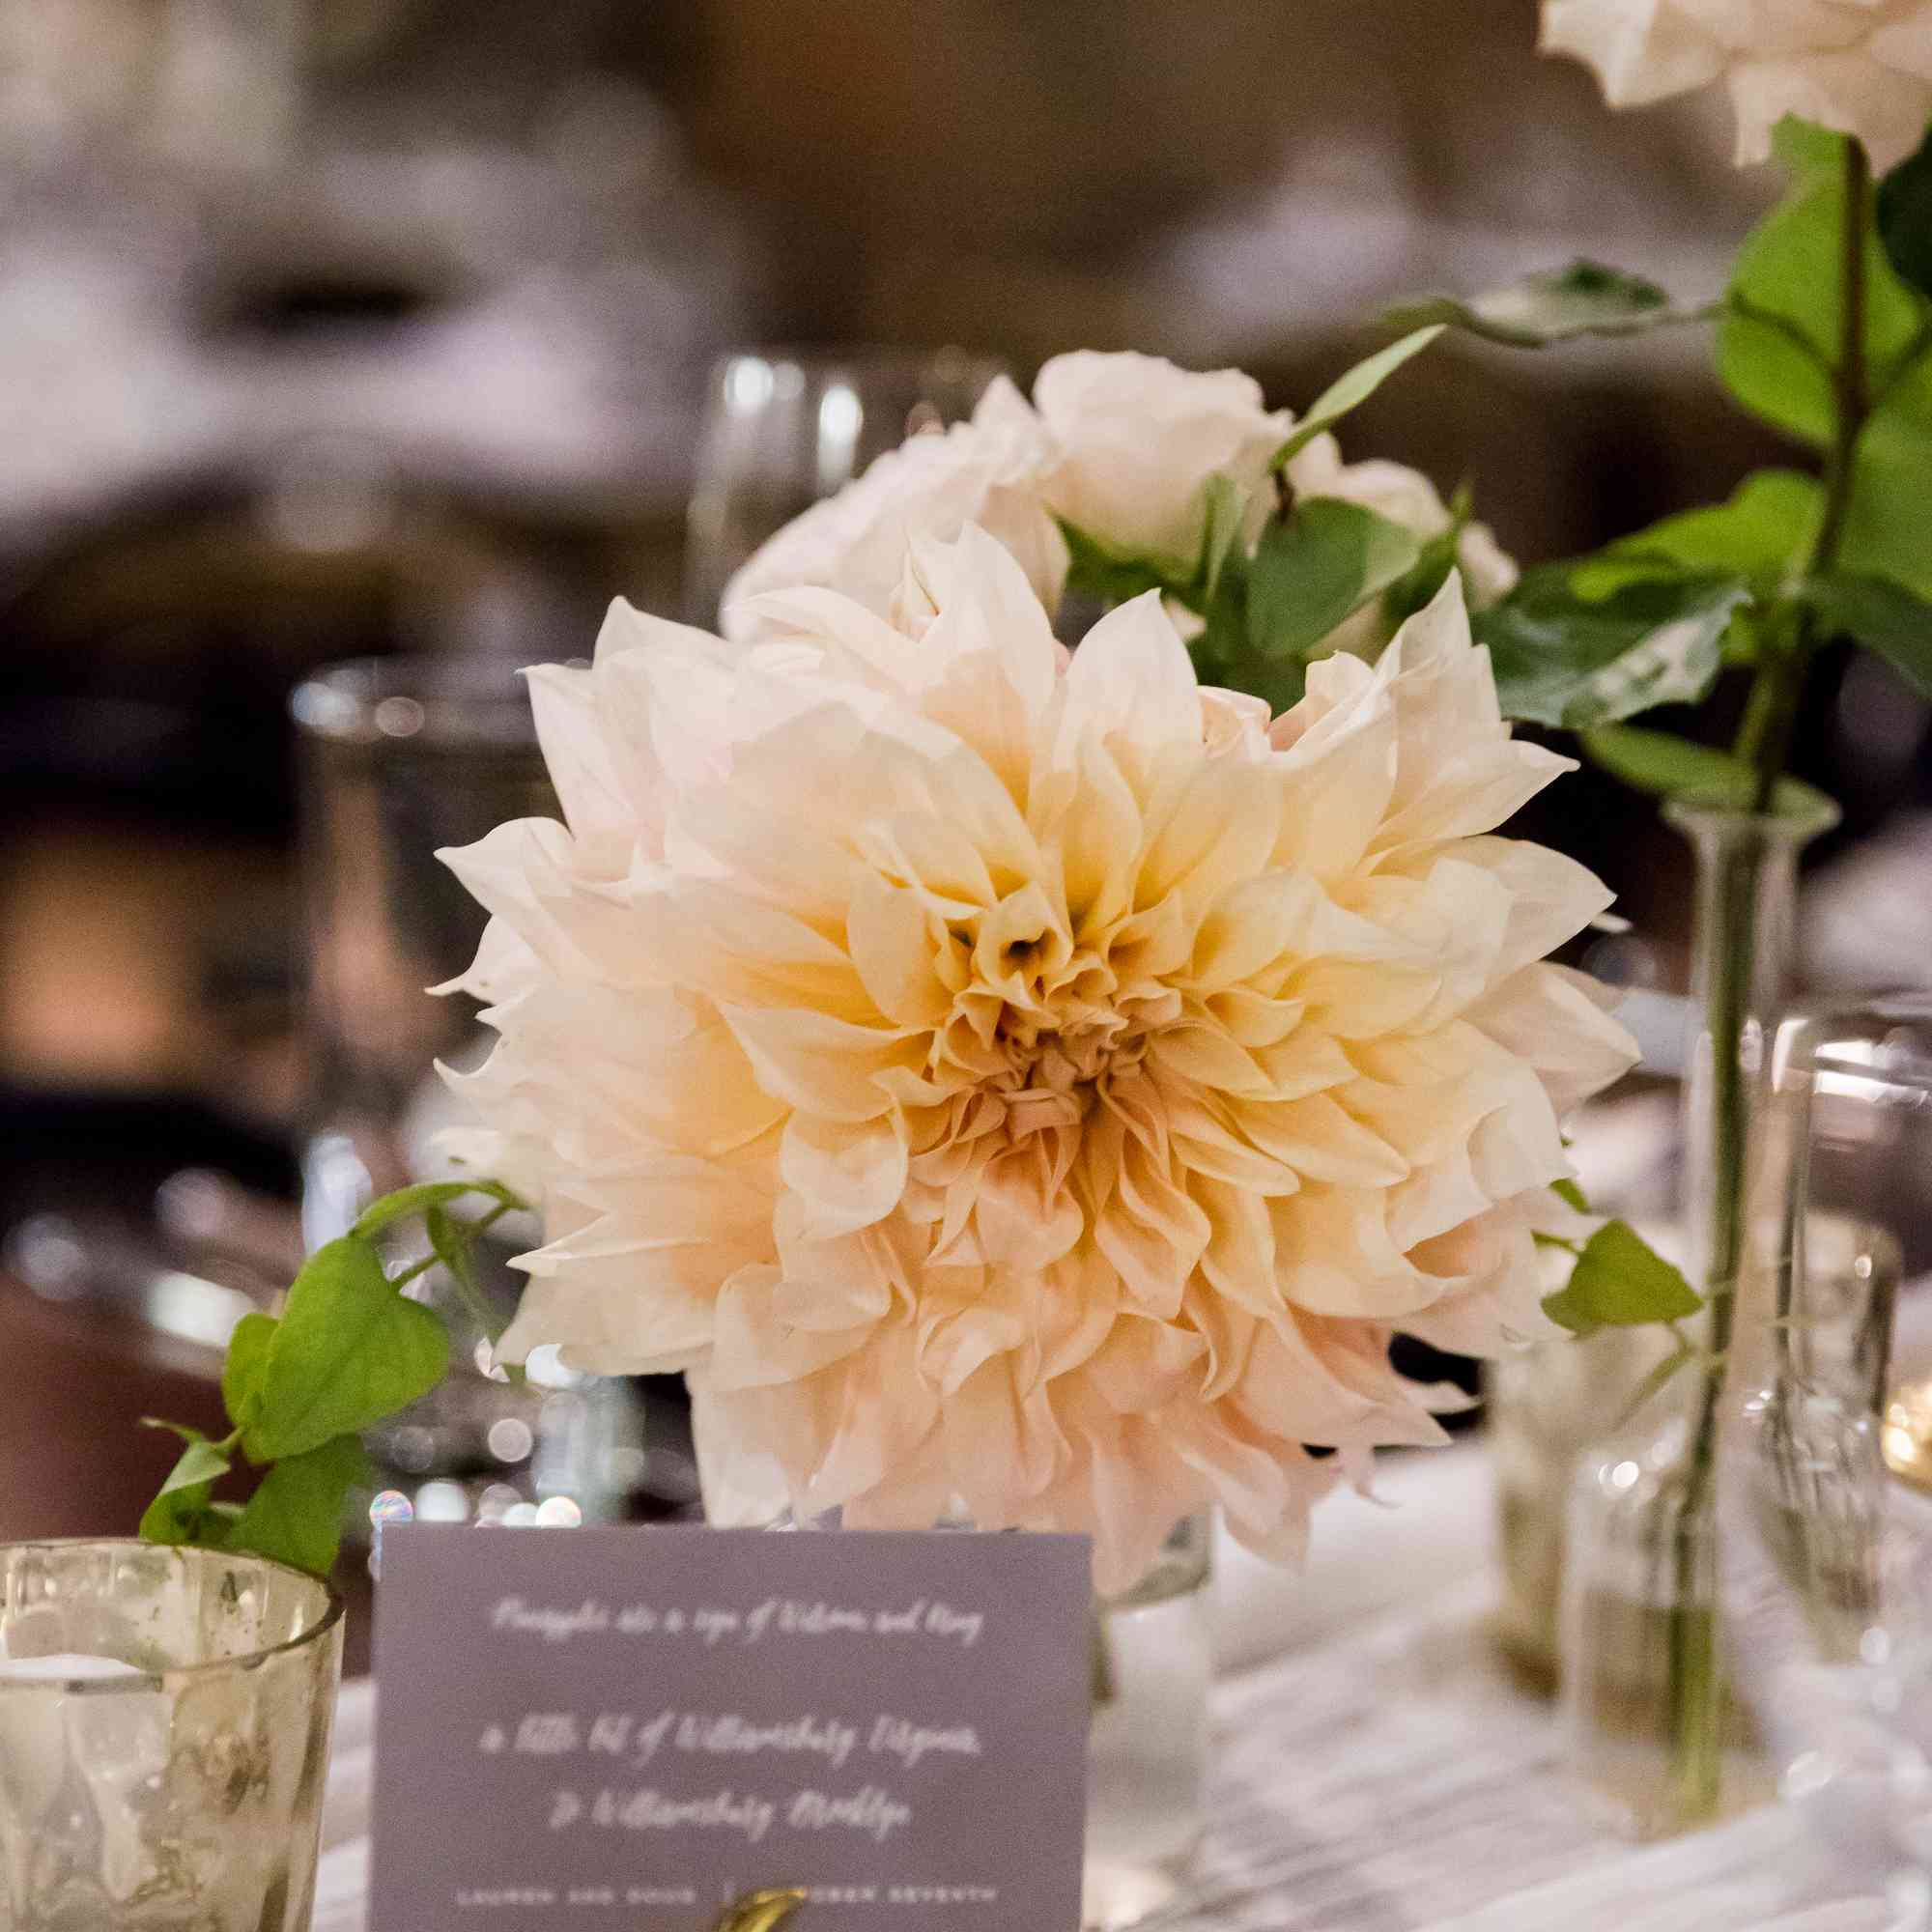 Statement-Making Solo Blooms